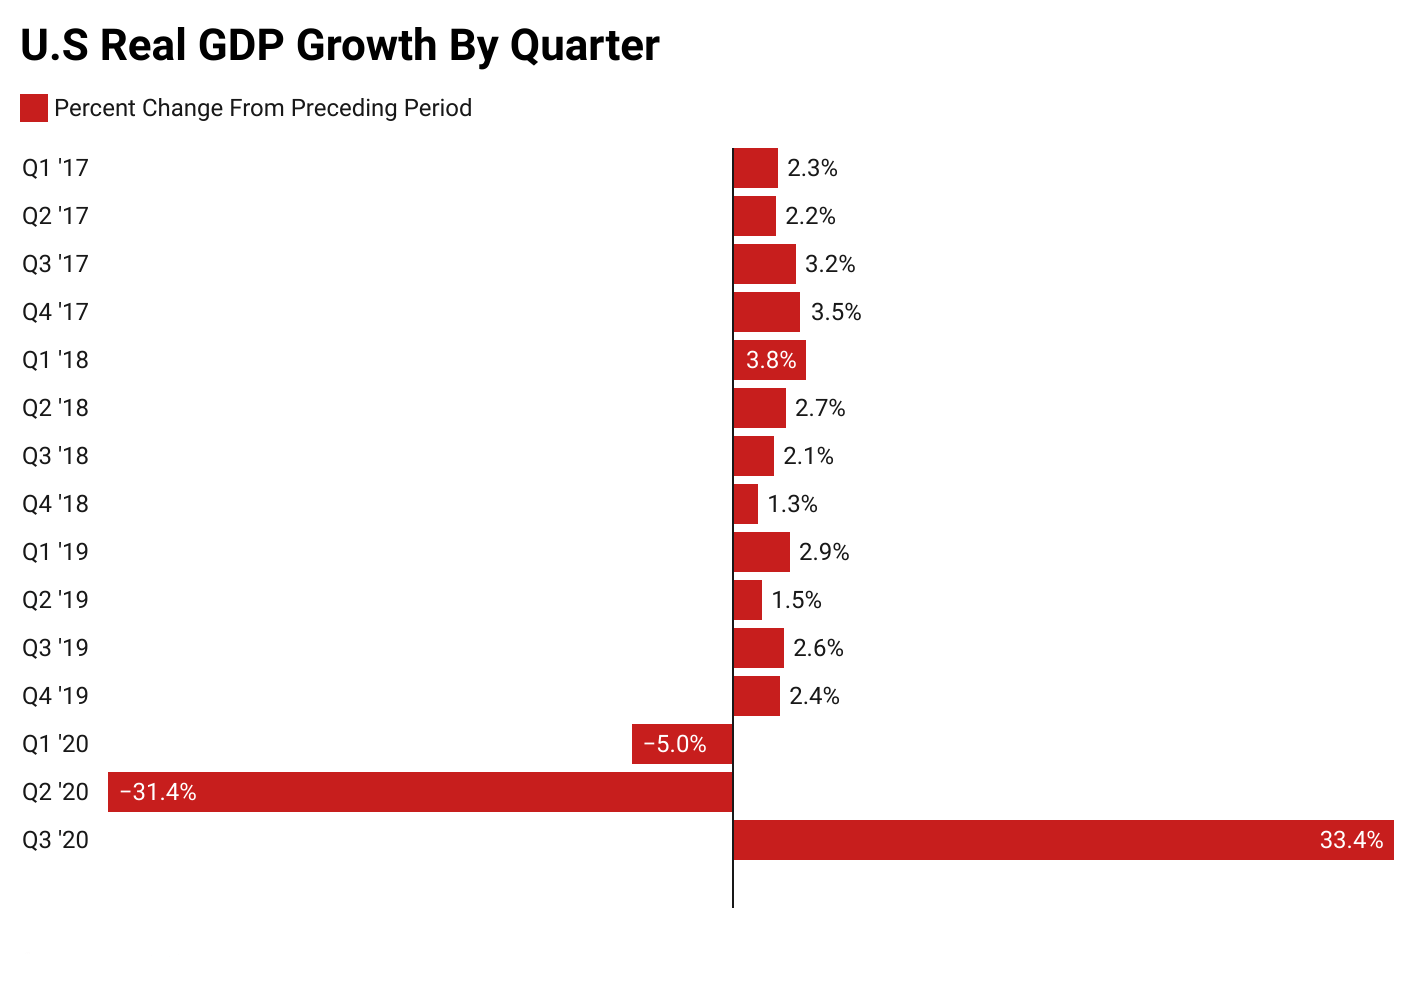 US Real GDP Growth by quarter